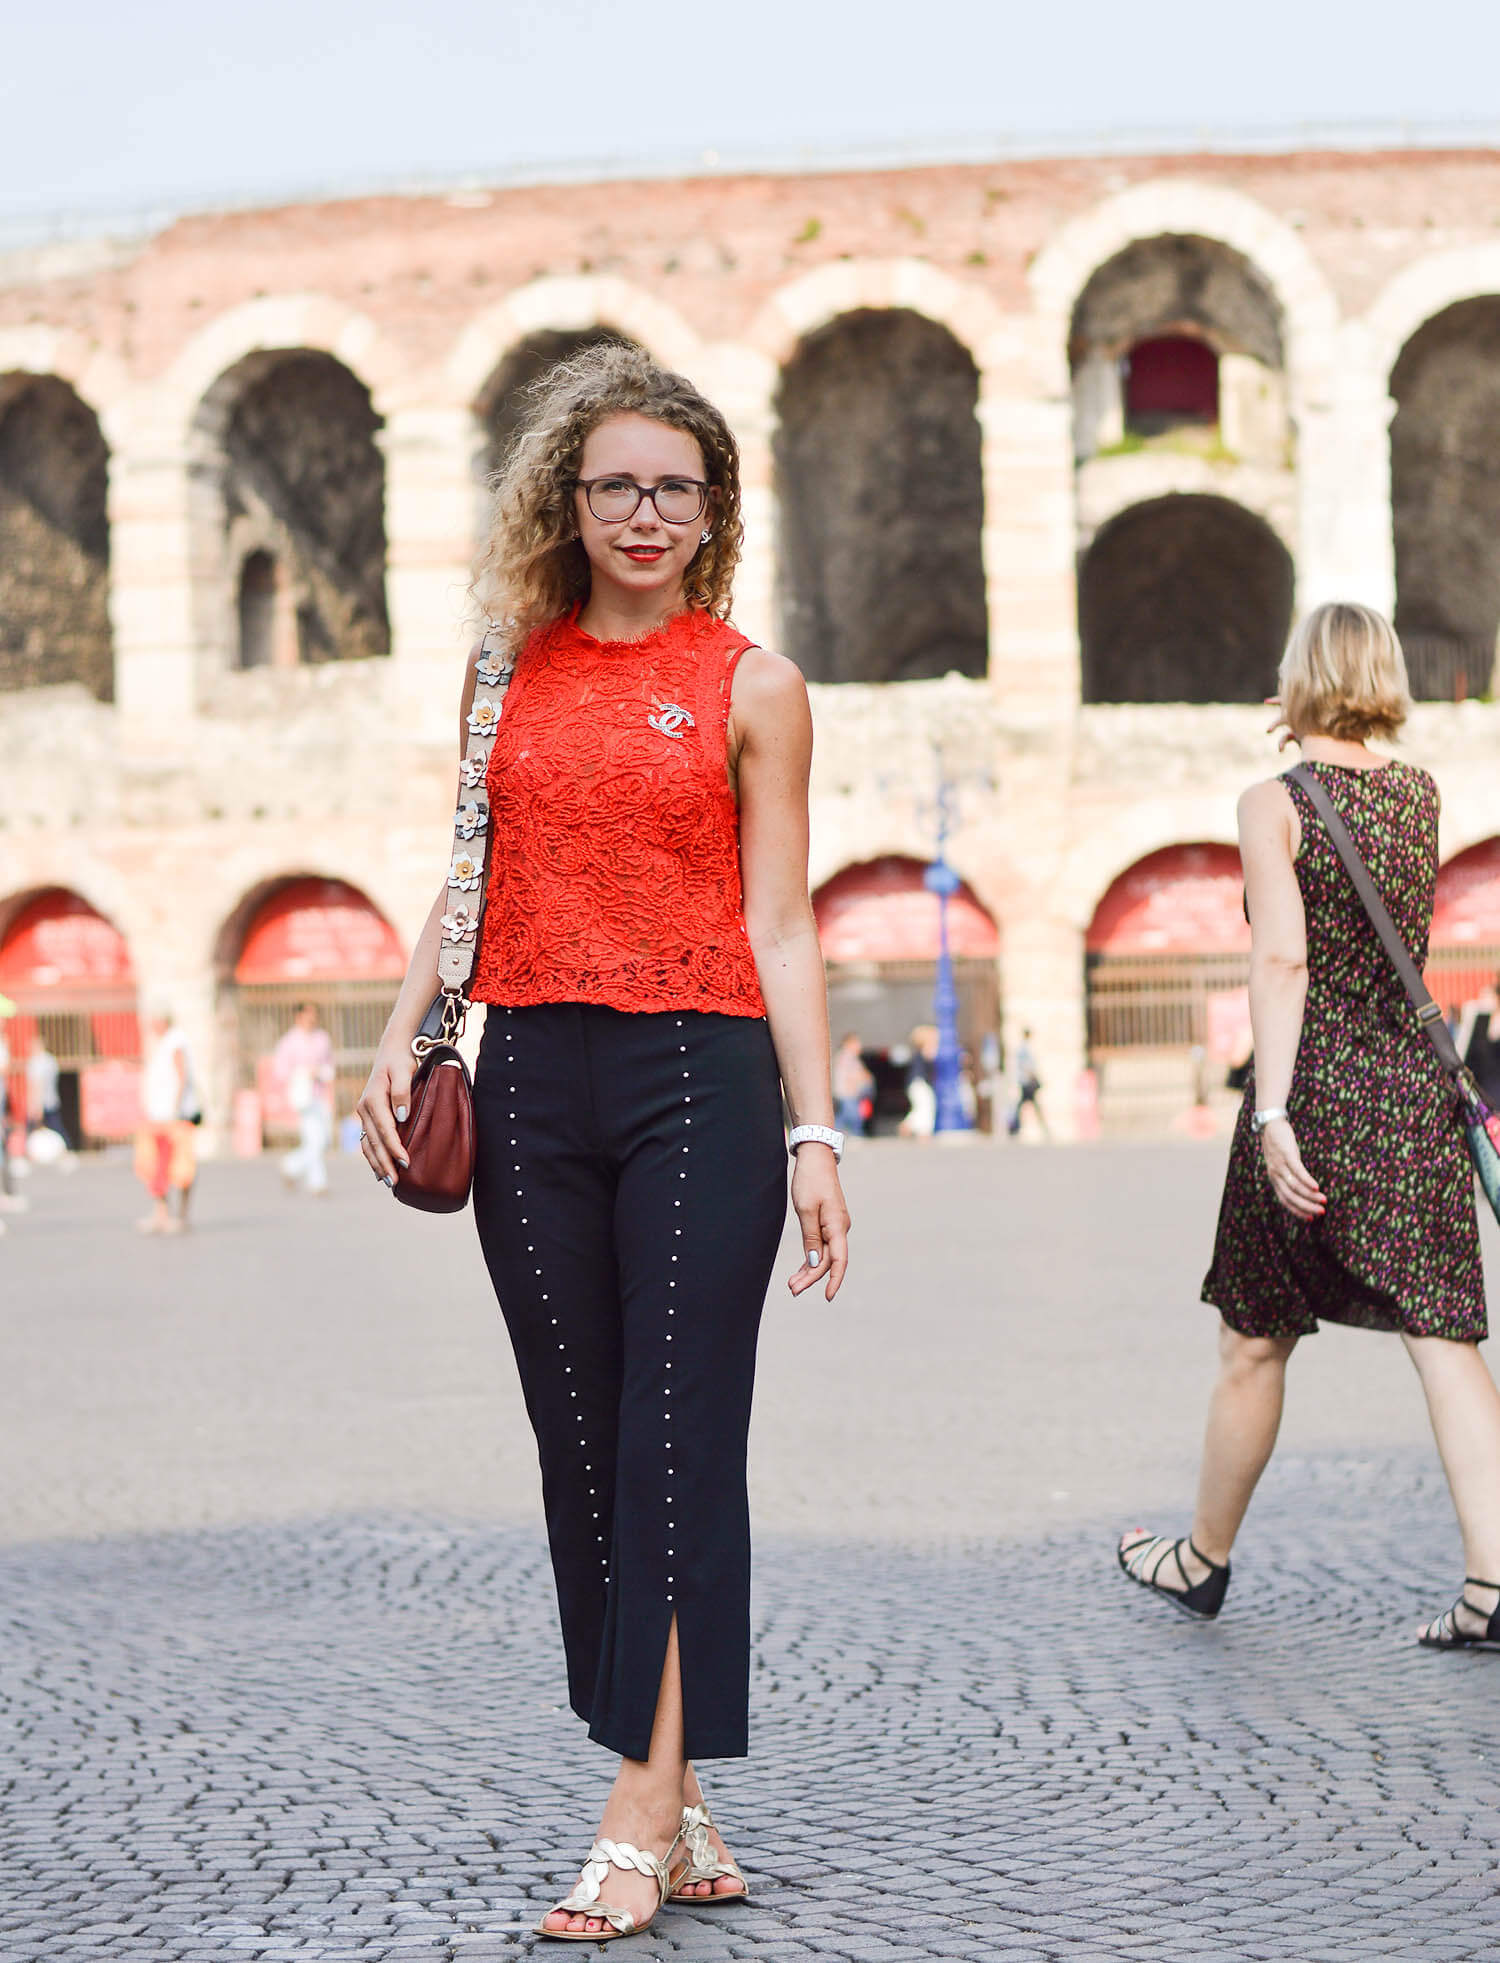 kationette-fashionblog-travelblog-Zara-Outfit-Lace-Top-Pearl-Pants-Verona-Italy